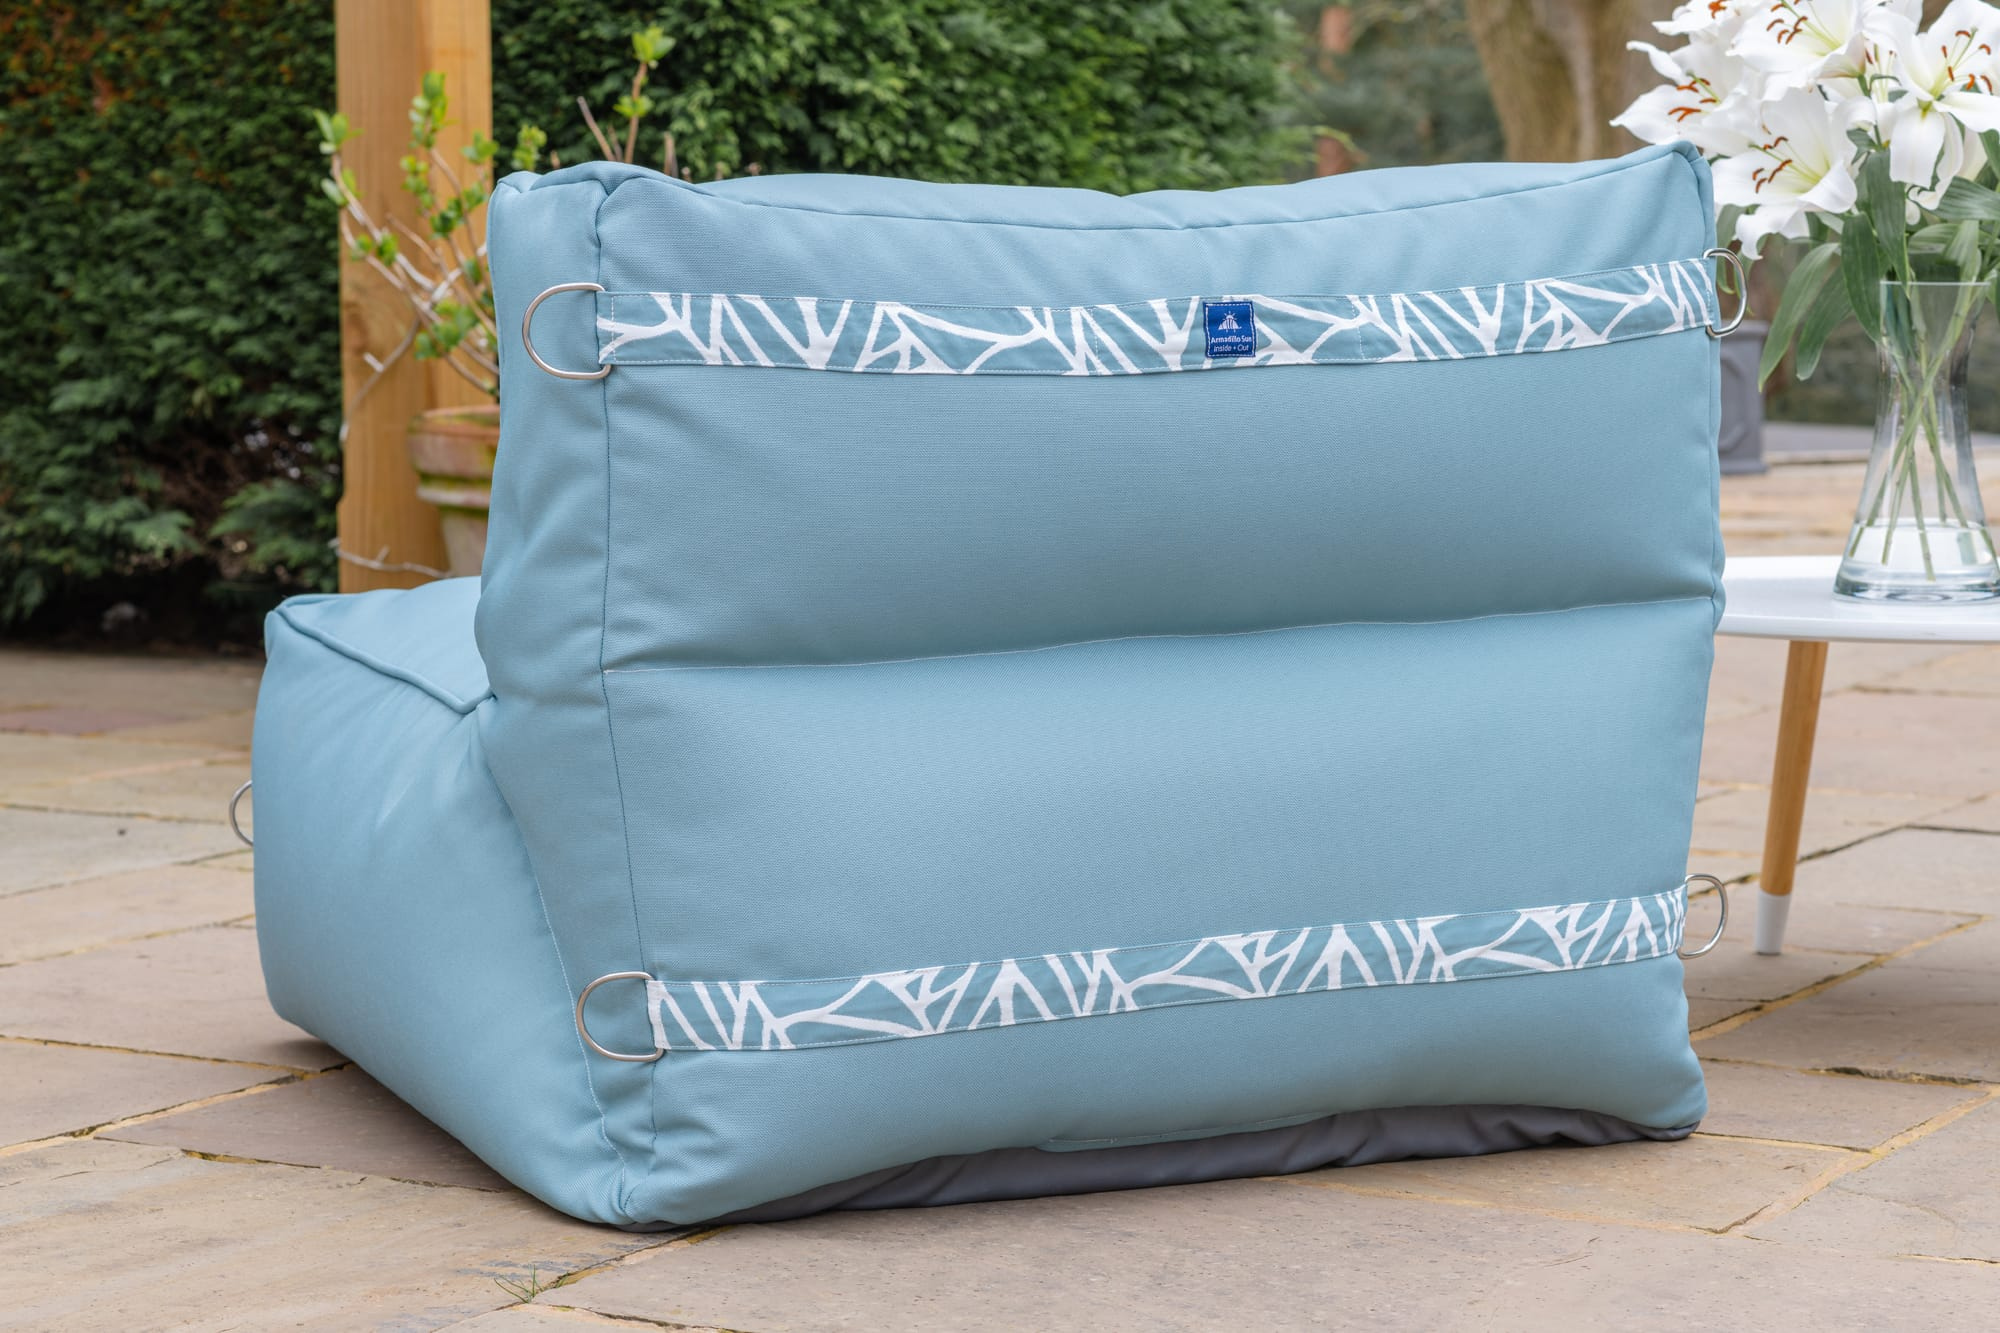 Monaco Modular Bean Bag Chair in Ocean with Palm Patterned Straps Monaco armadillosun